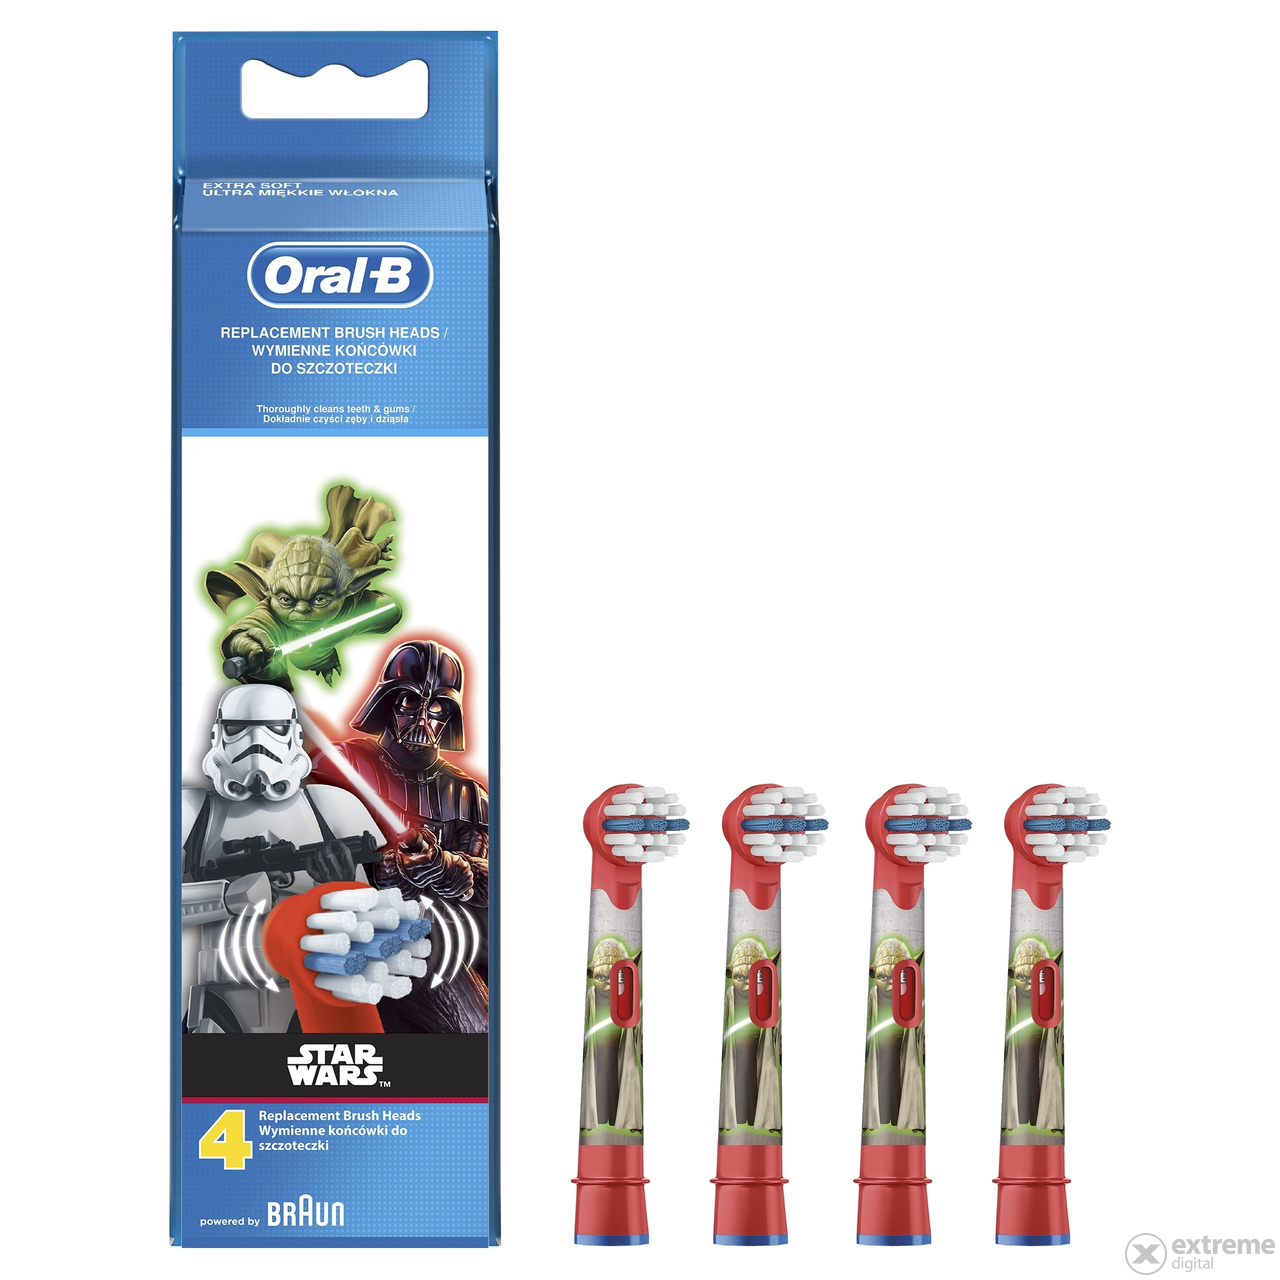 Oral-B EB10-4 Stages Power Kids Ersatzköpfe, 4 Stk. - Star Wars